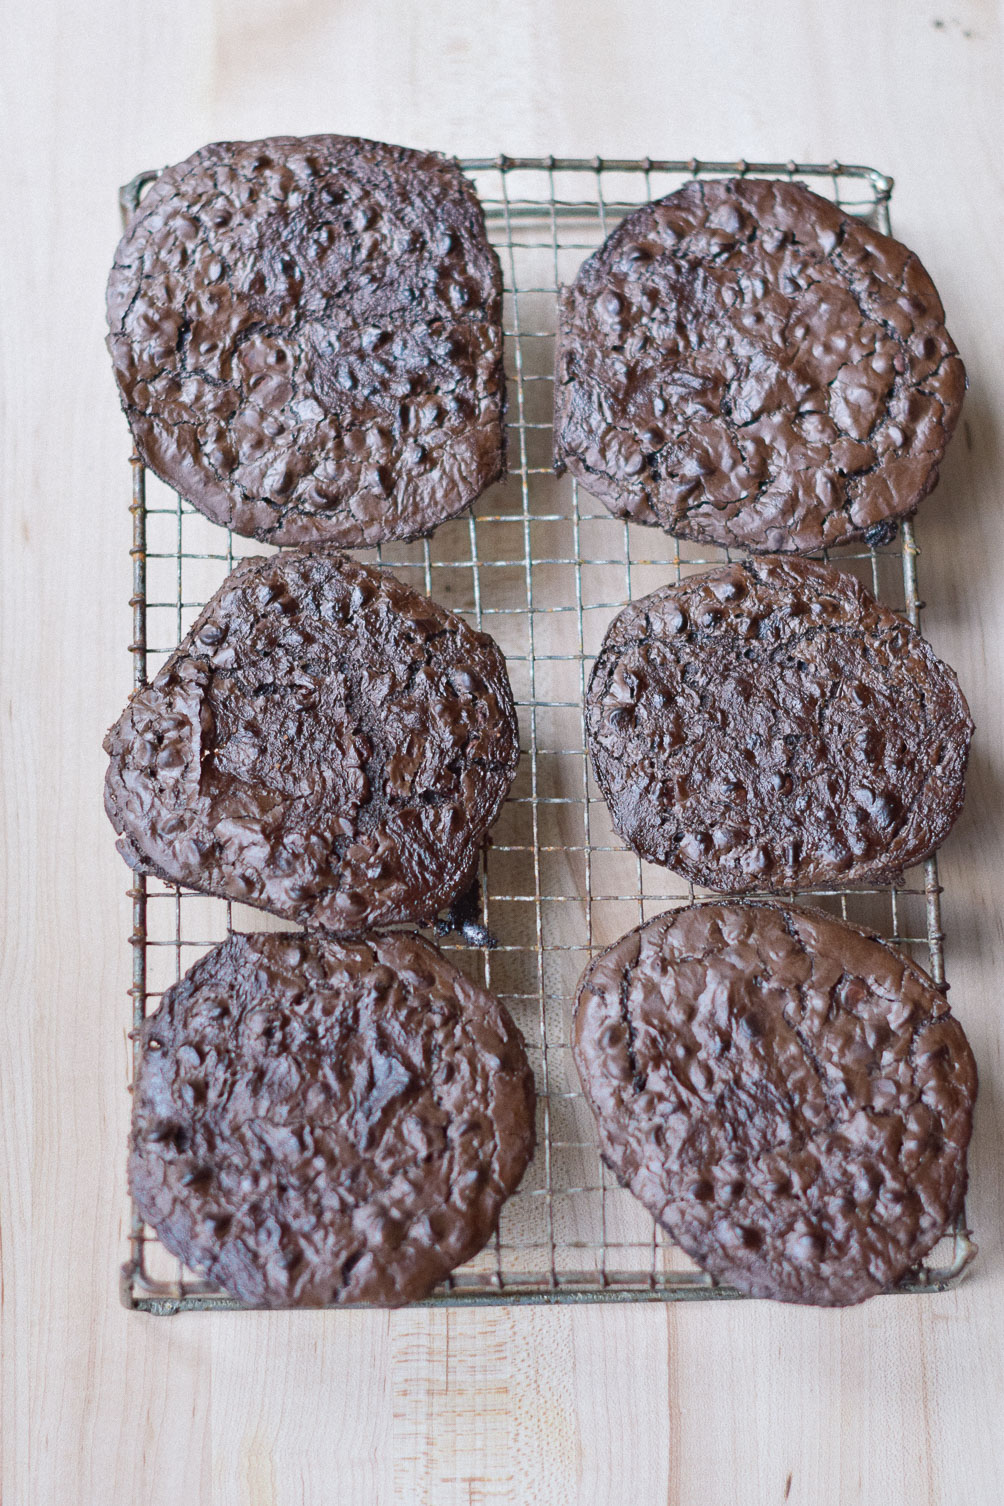 easy and delicious gluten free dessert recipe for flourless fudge cookies